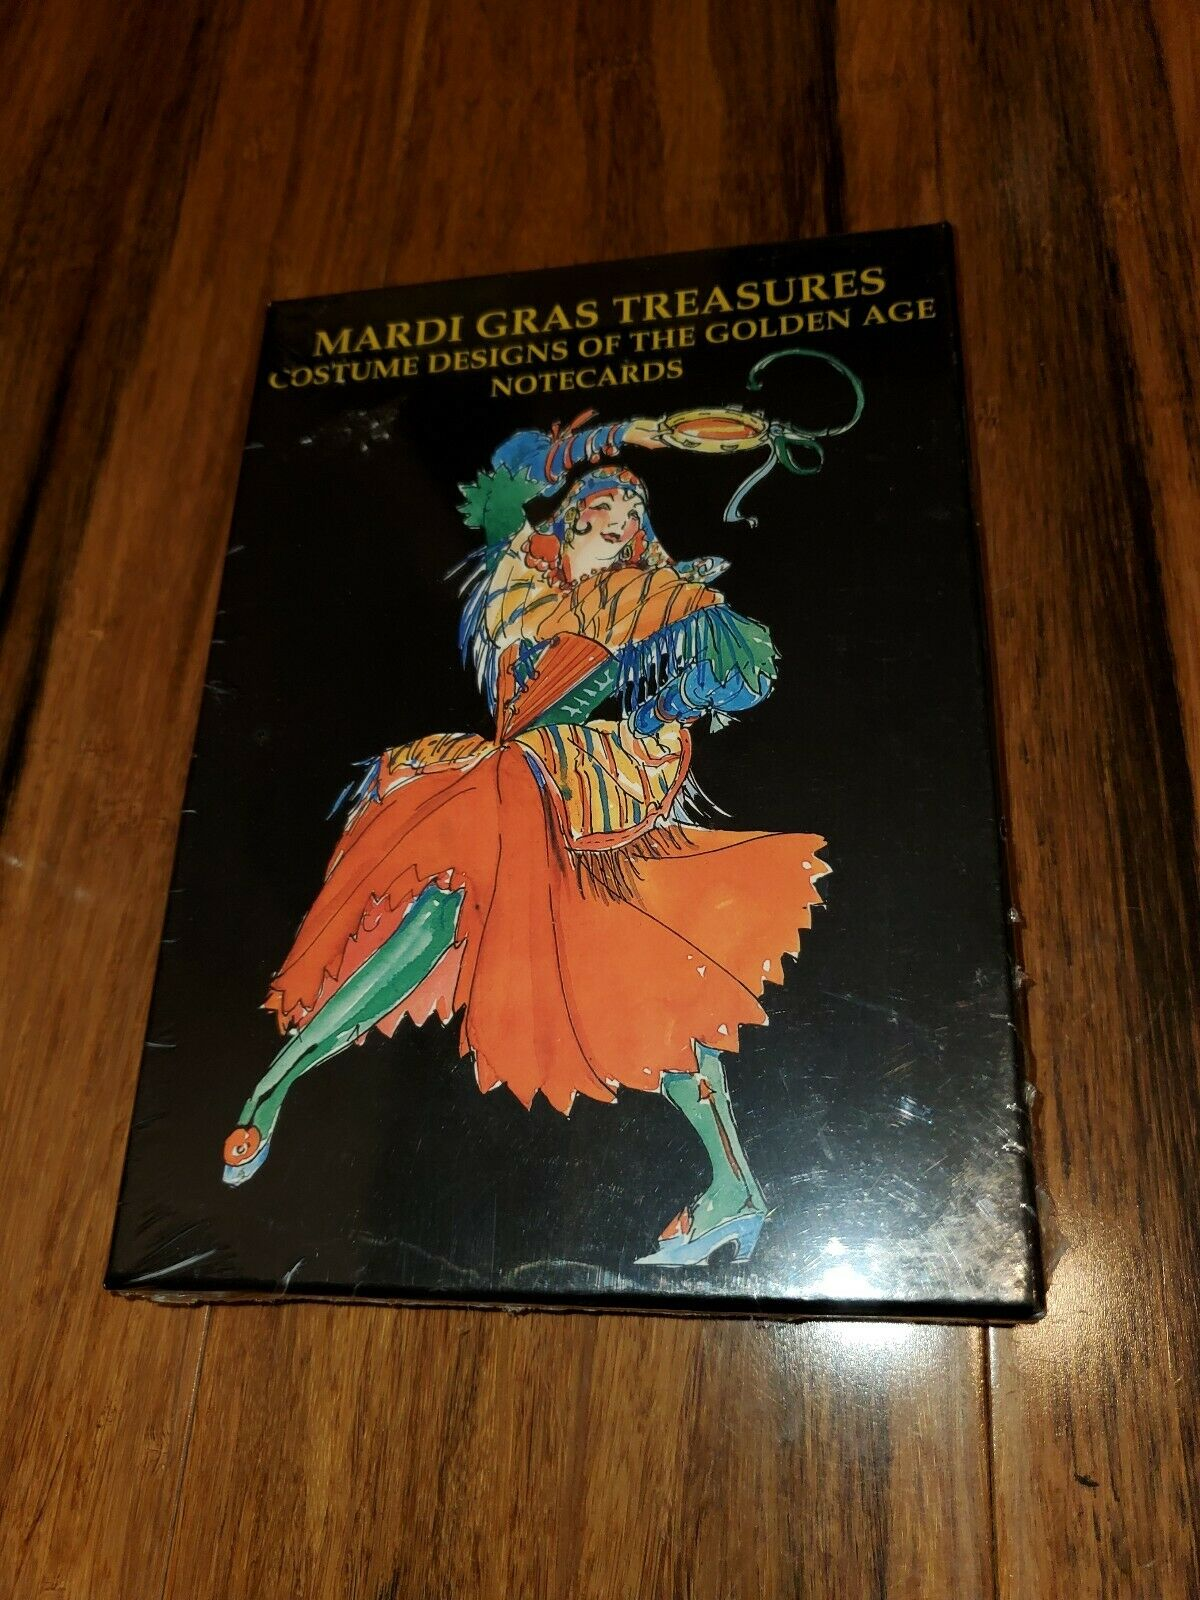 Mardi Gras Treasures Ser Mardi Gras Treasures Costume Designs Of The Golden Age By Henri Schindler 2002 Hardcover For Sale Online Ebay